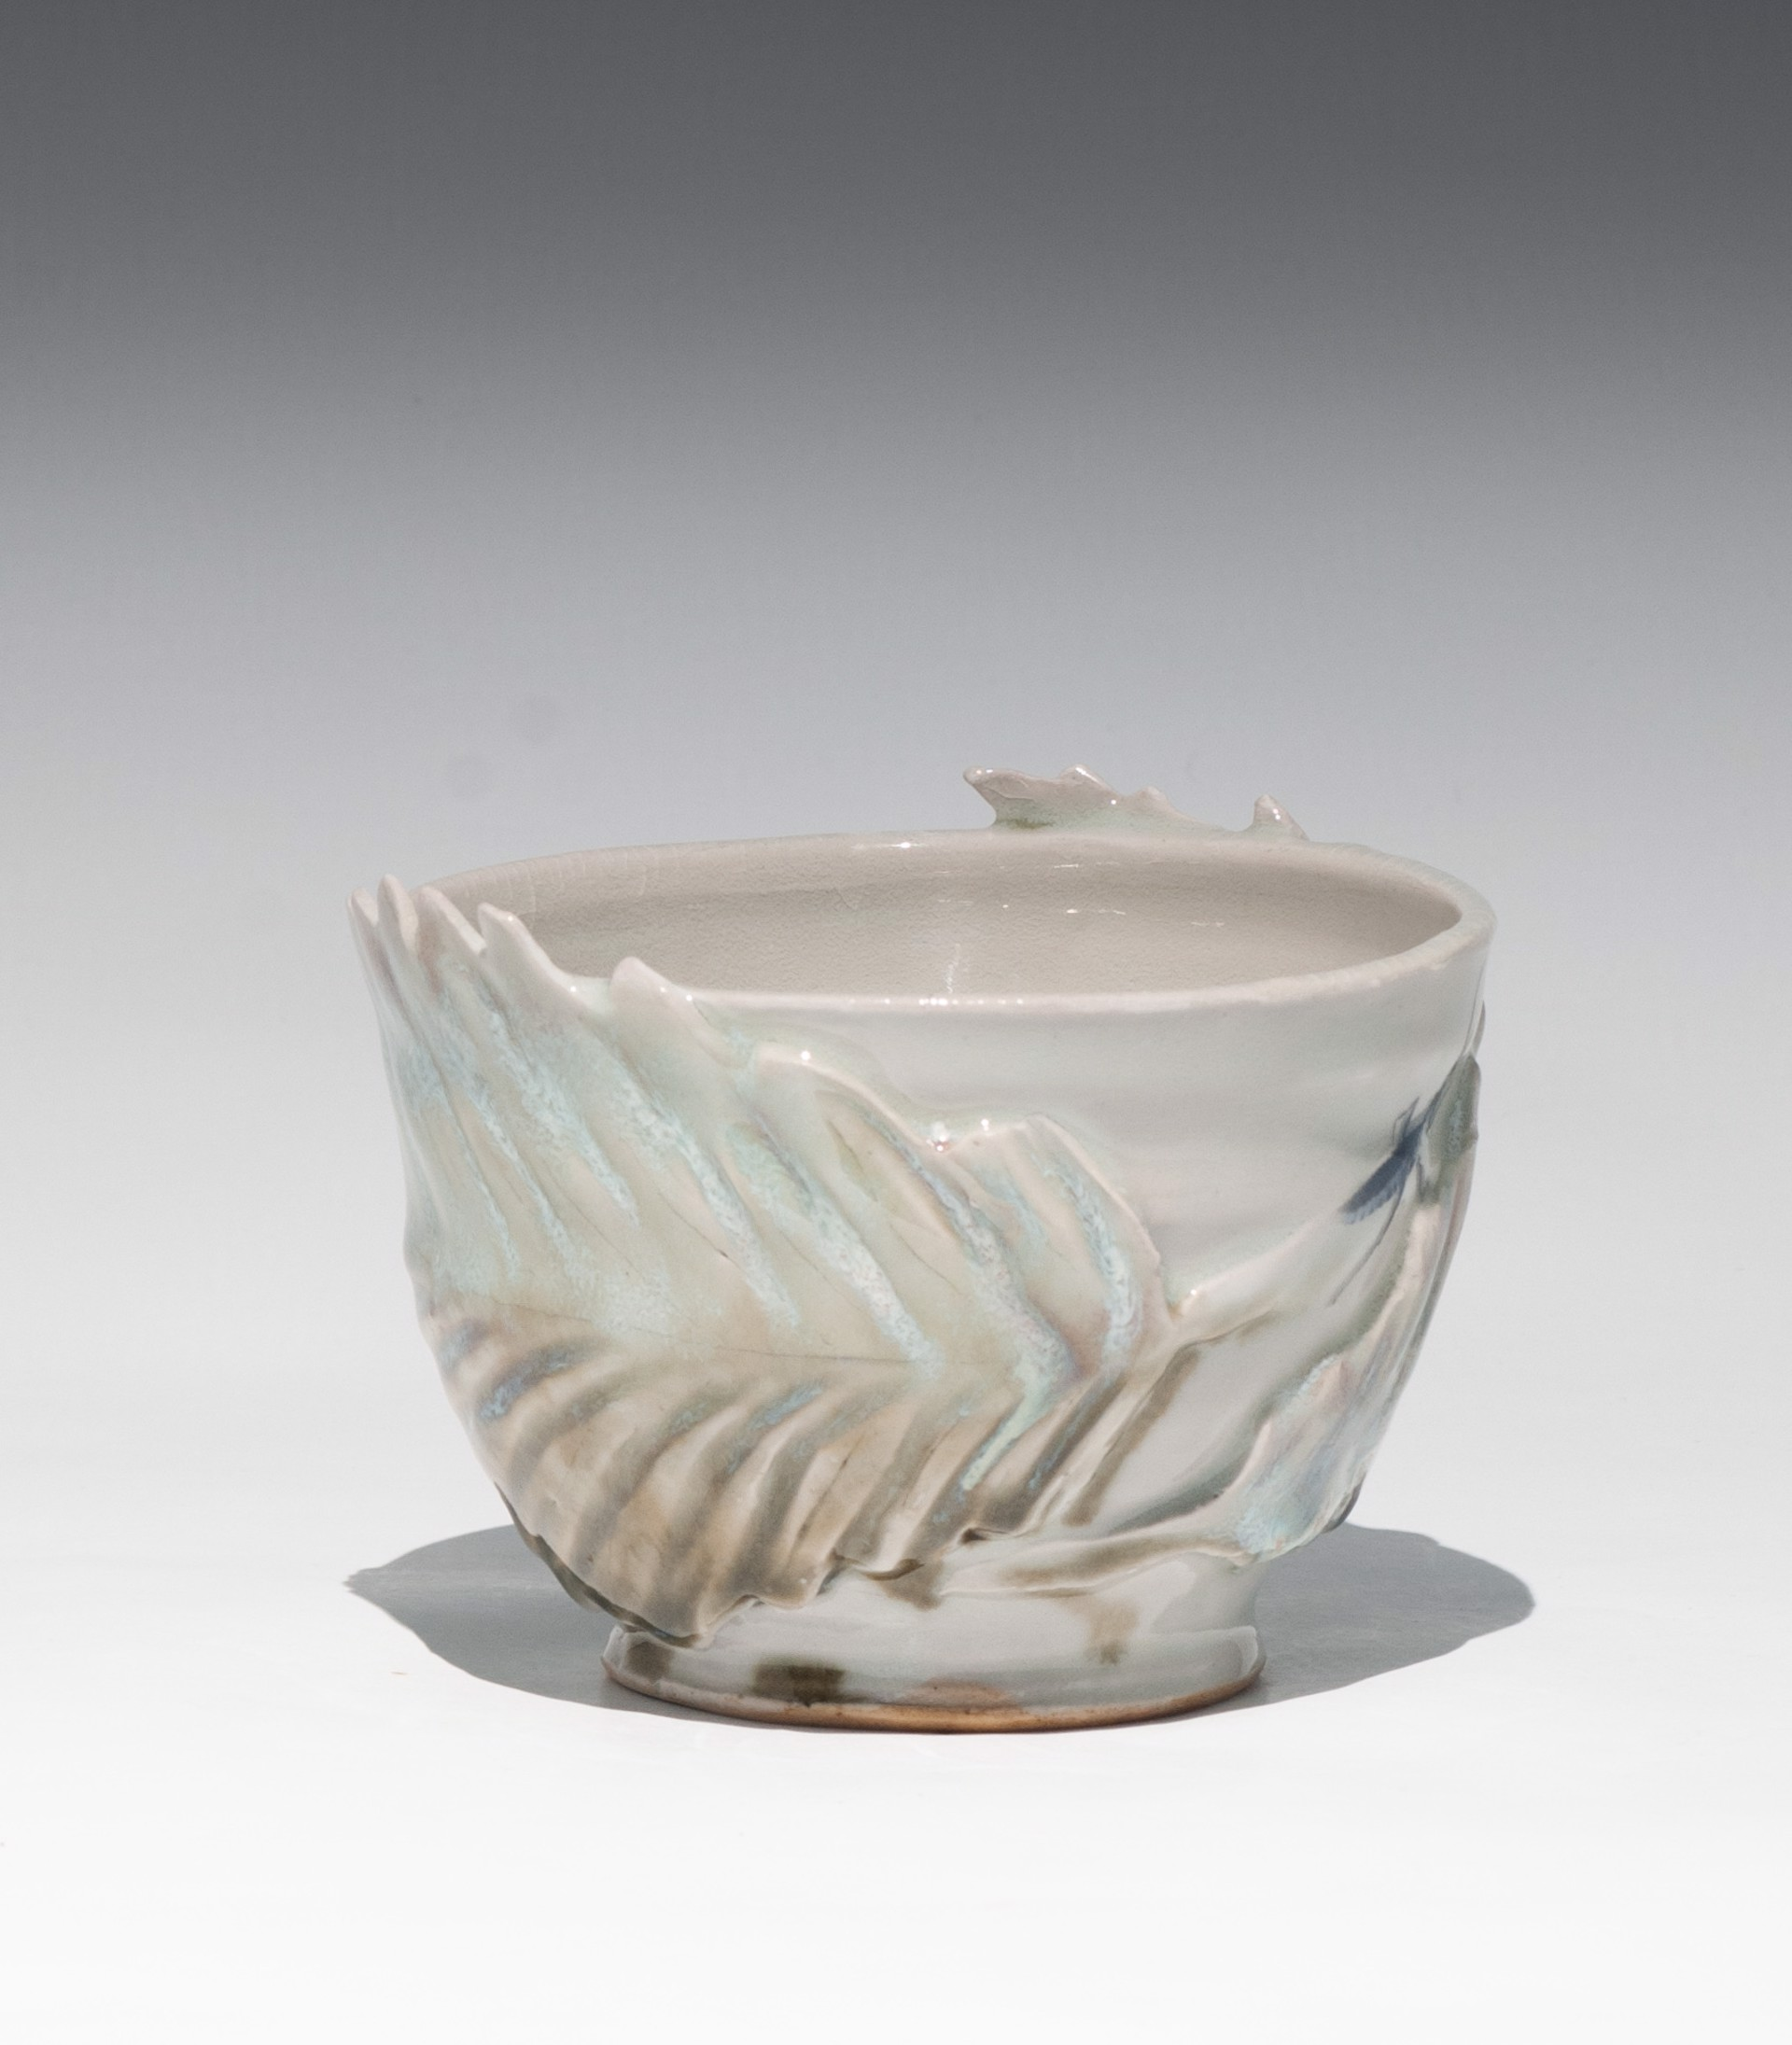 Insect Bowl by Caroline Bottom Anderson